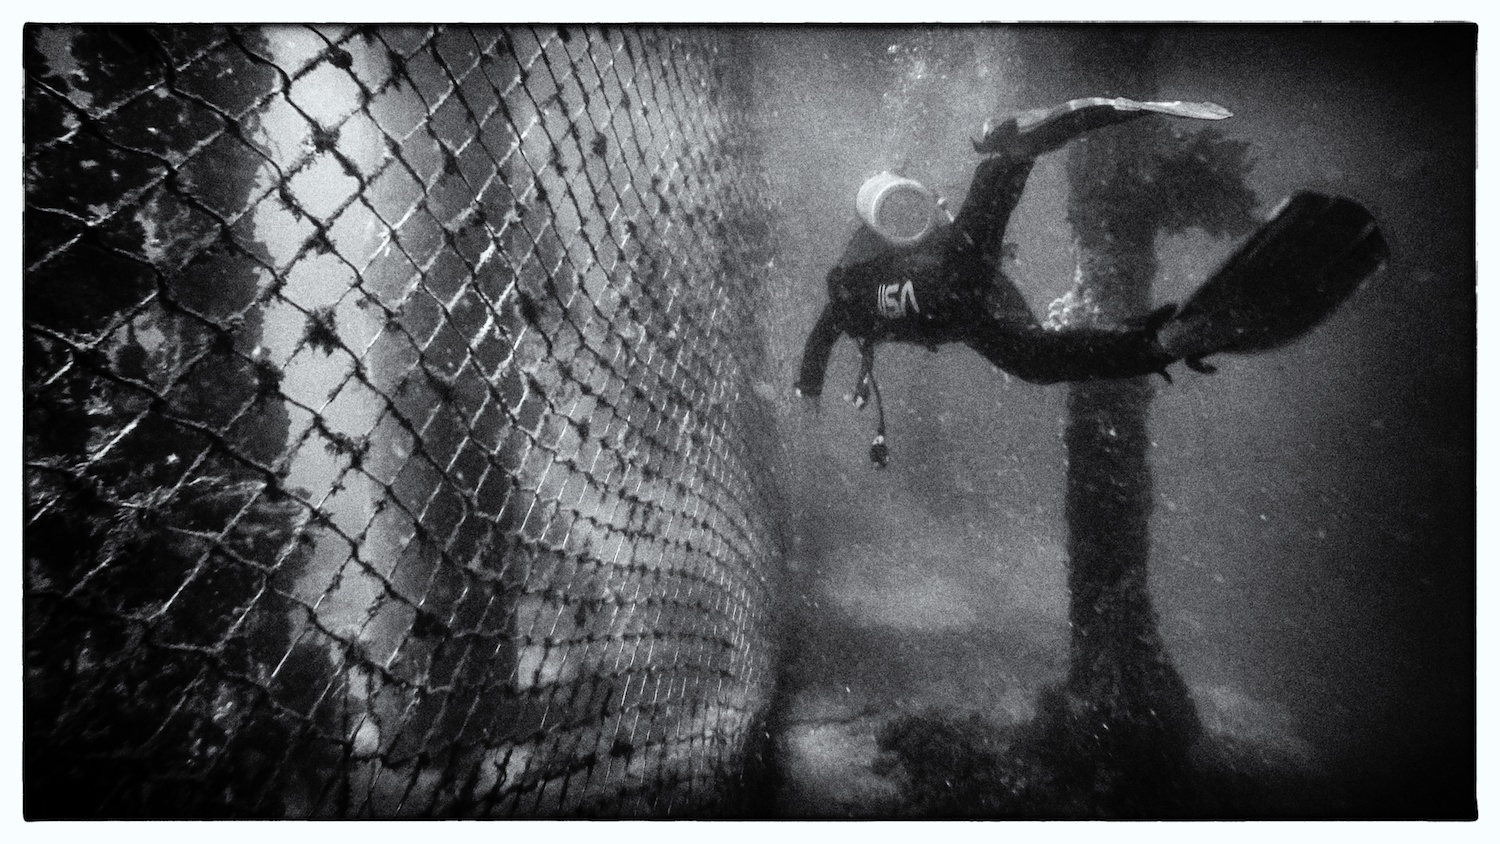 A scuba diver in Sydney explores the outer side of a shark fence built to protect swimmers at the nearby beach.